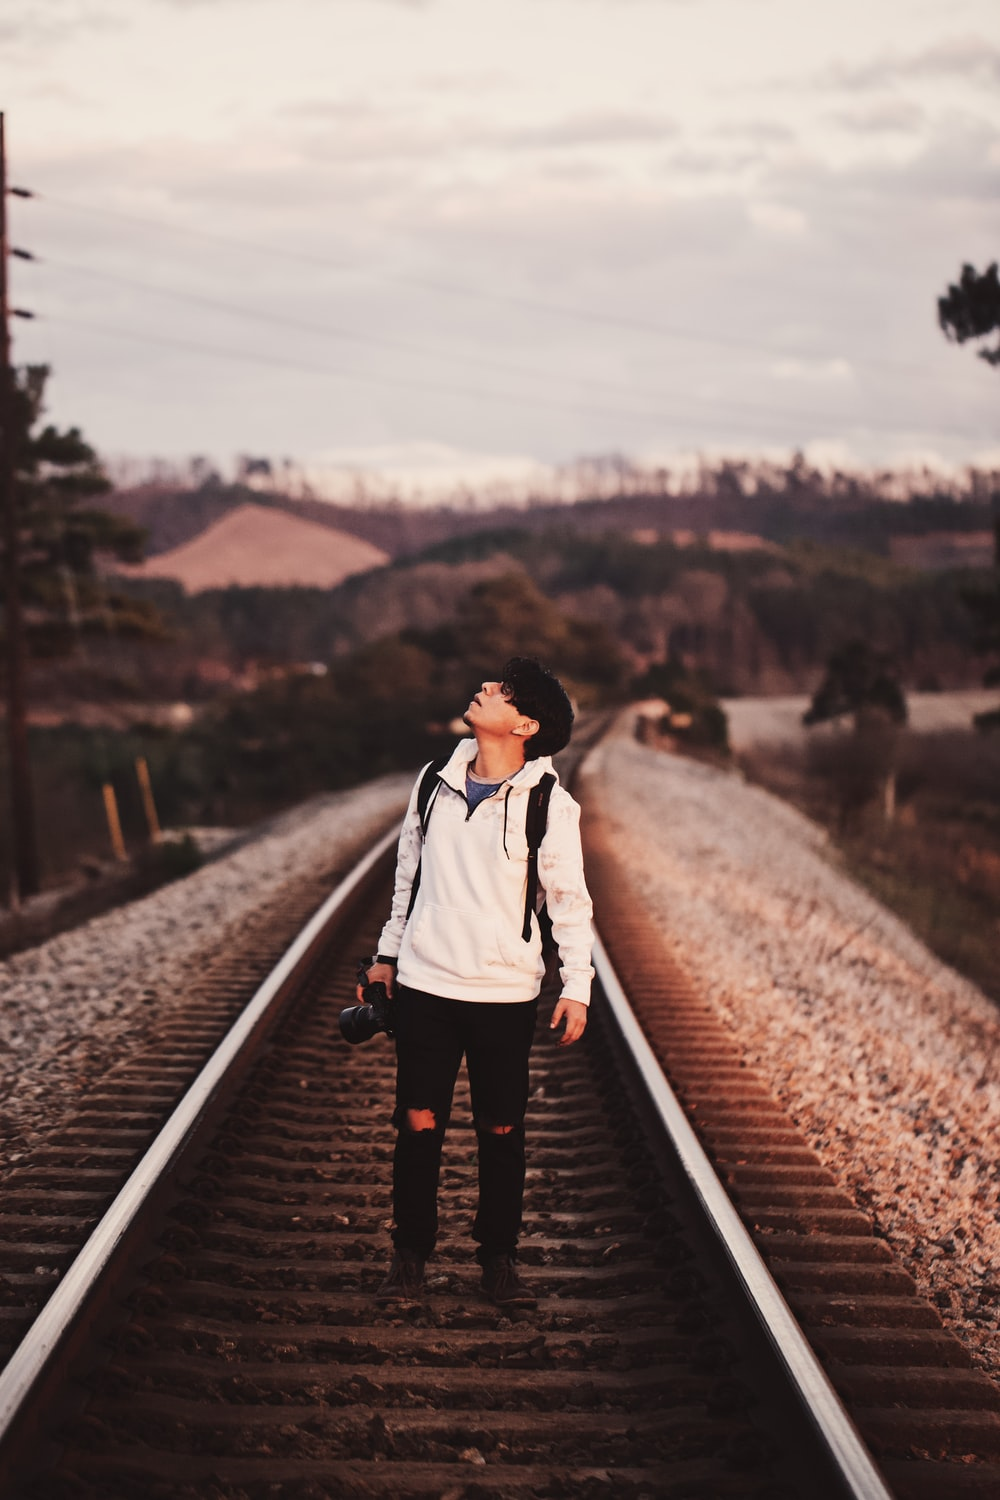 man standing on train rails